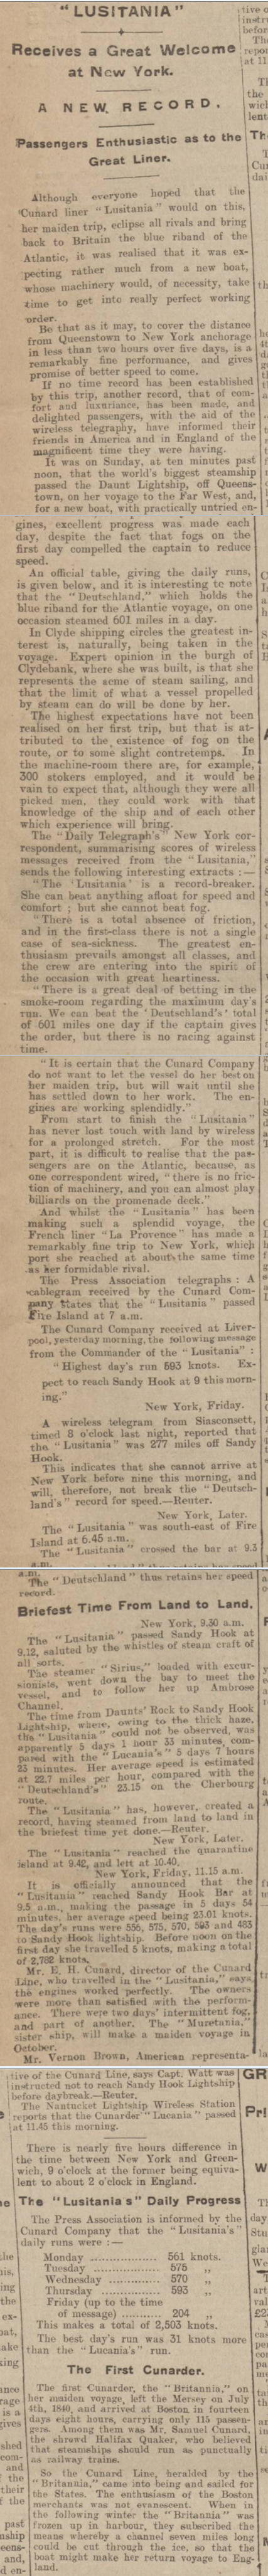 historical newspaper report on RMS Lusitania